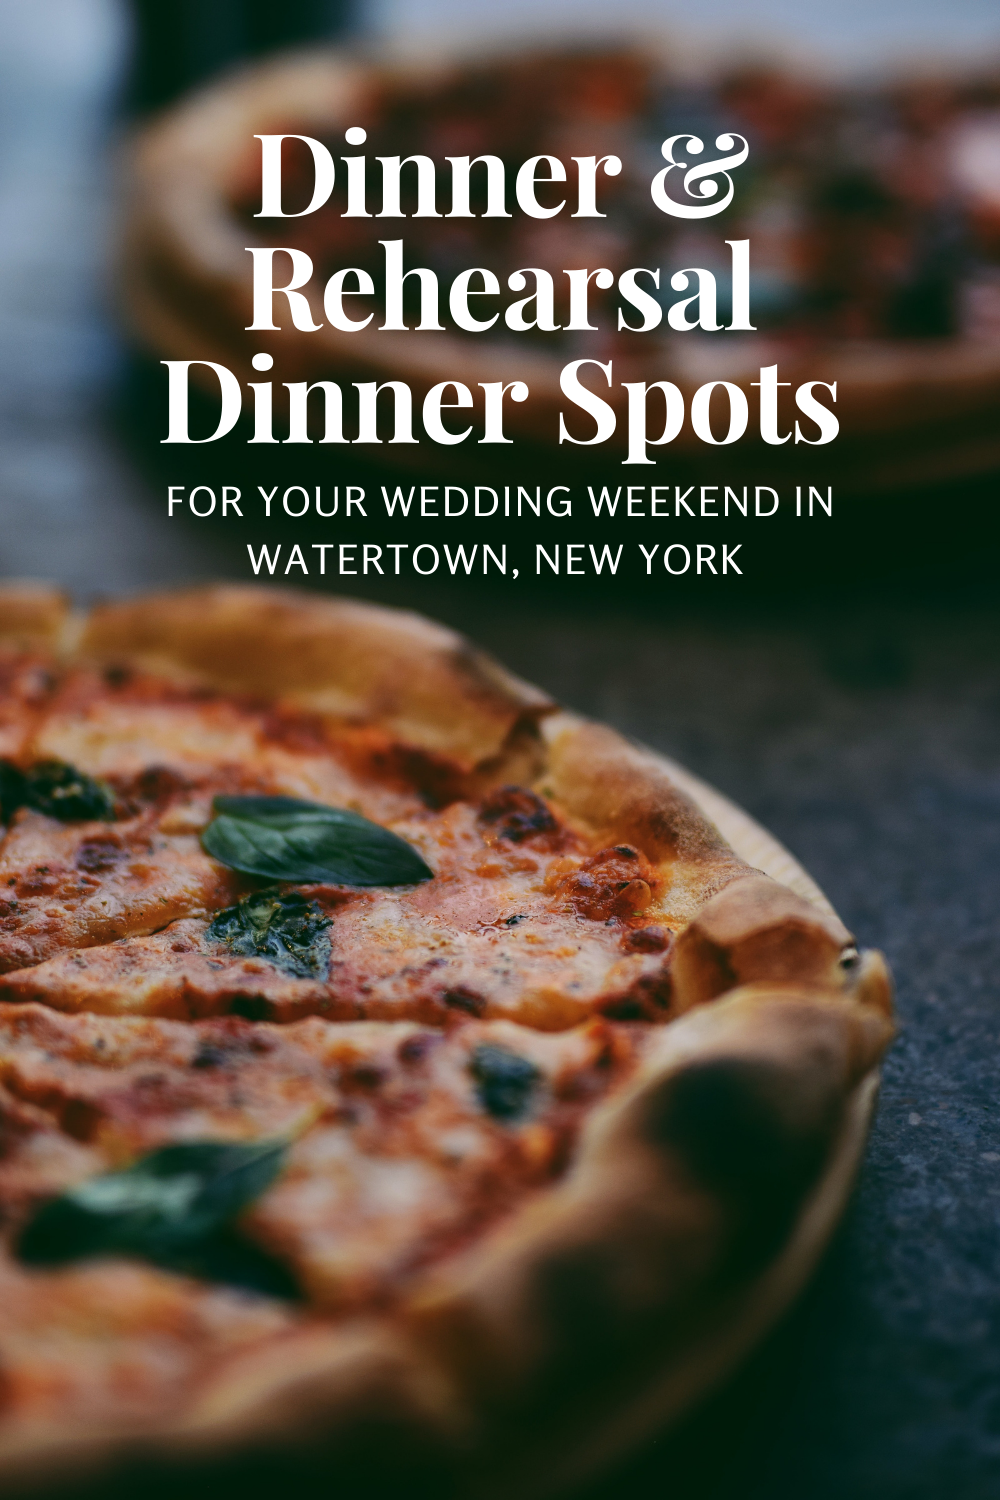 Dinner & Rehearsal Dinner Spots for your Wedding Weekend in Watertown, New York